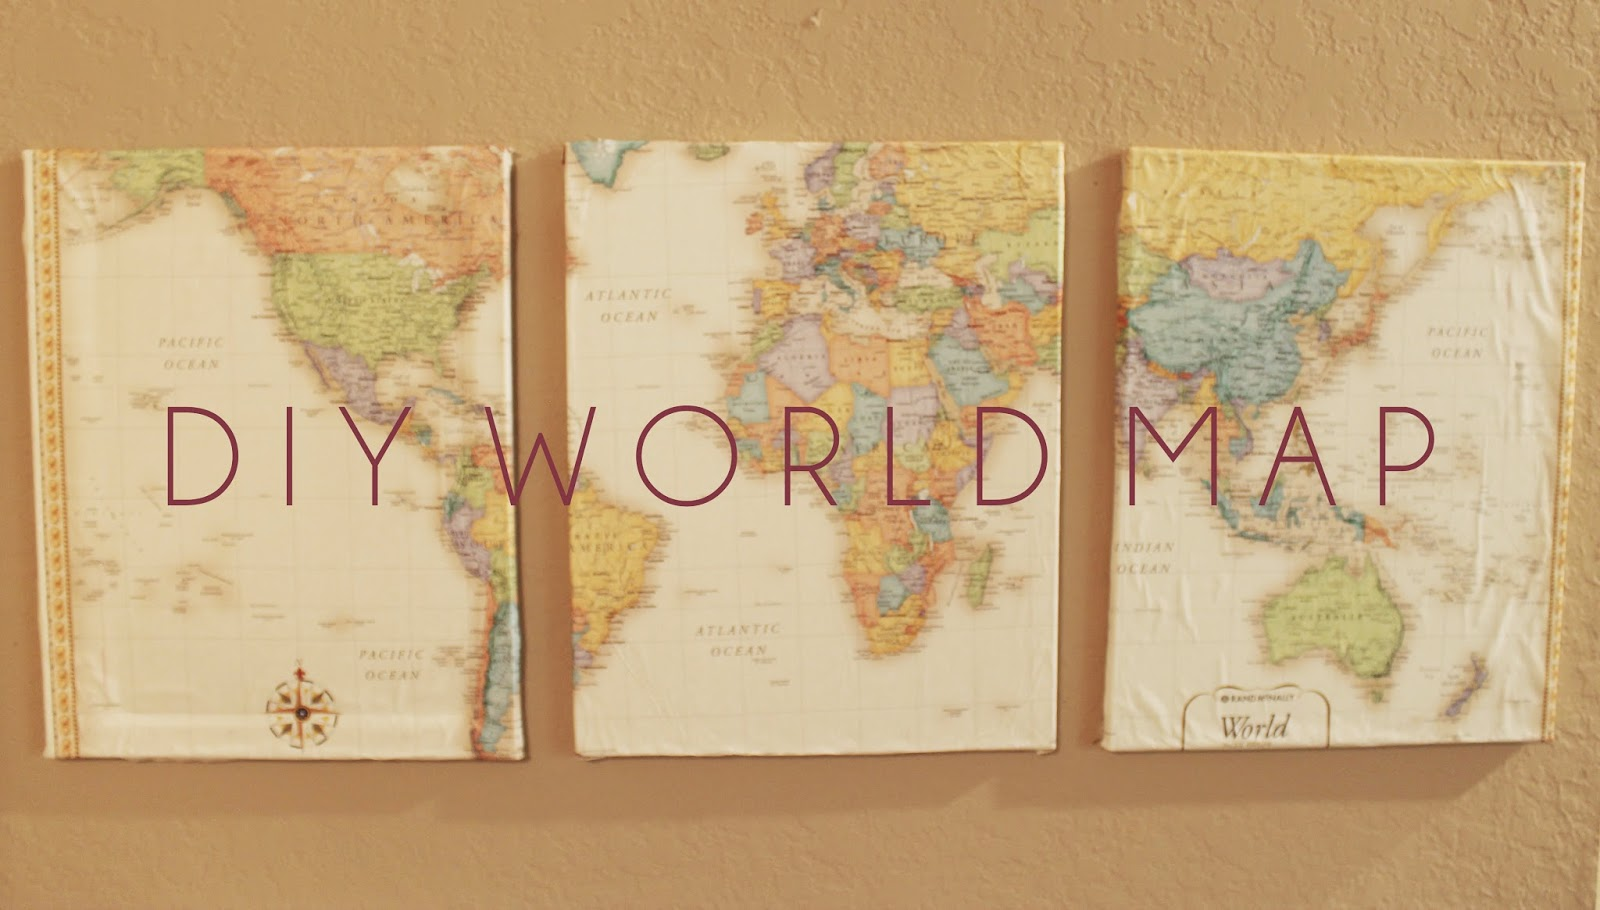 Map of the world hobby lobby map of the world hobby lobby 3 canvases i used the ones that come in gumiabroncs